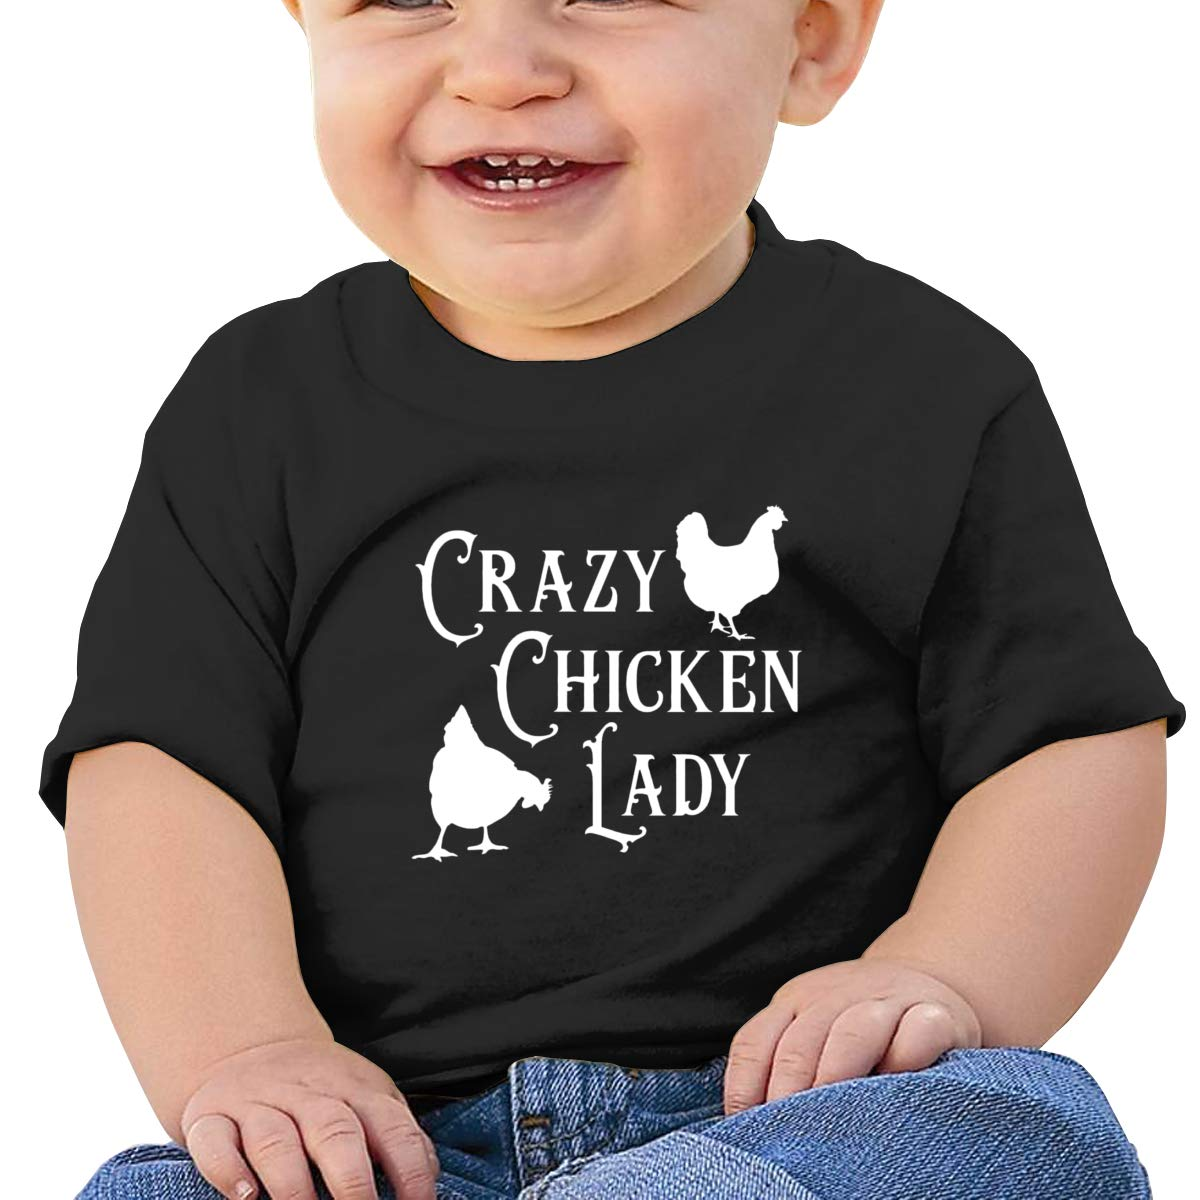 Crazy Chicken Lady Baby T-Shirt Baby Boy Girl Cotton T Shirts Soft Tops for 6M-2T Baby